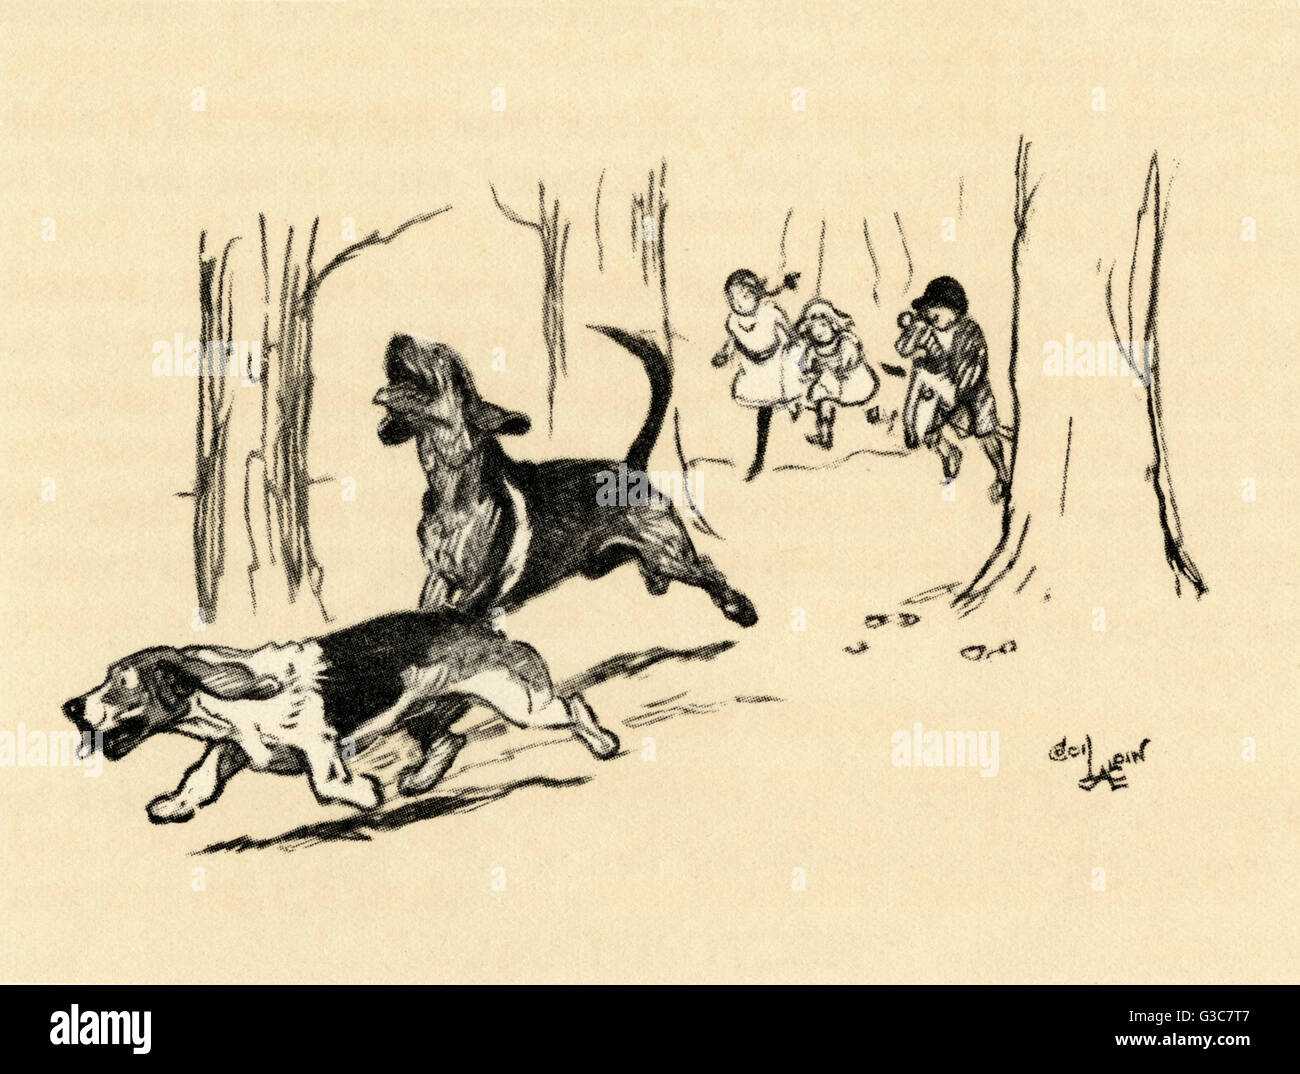 Illustration by Cecil Aldin -- Hunting the Criminal, a popular game played by Aldin's children and two dogs, - Stock Image